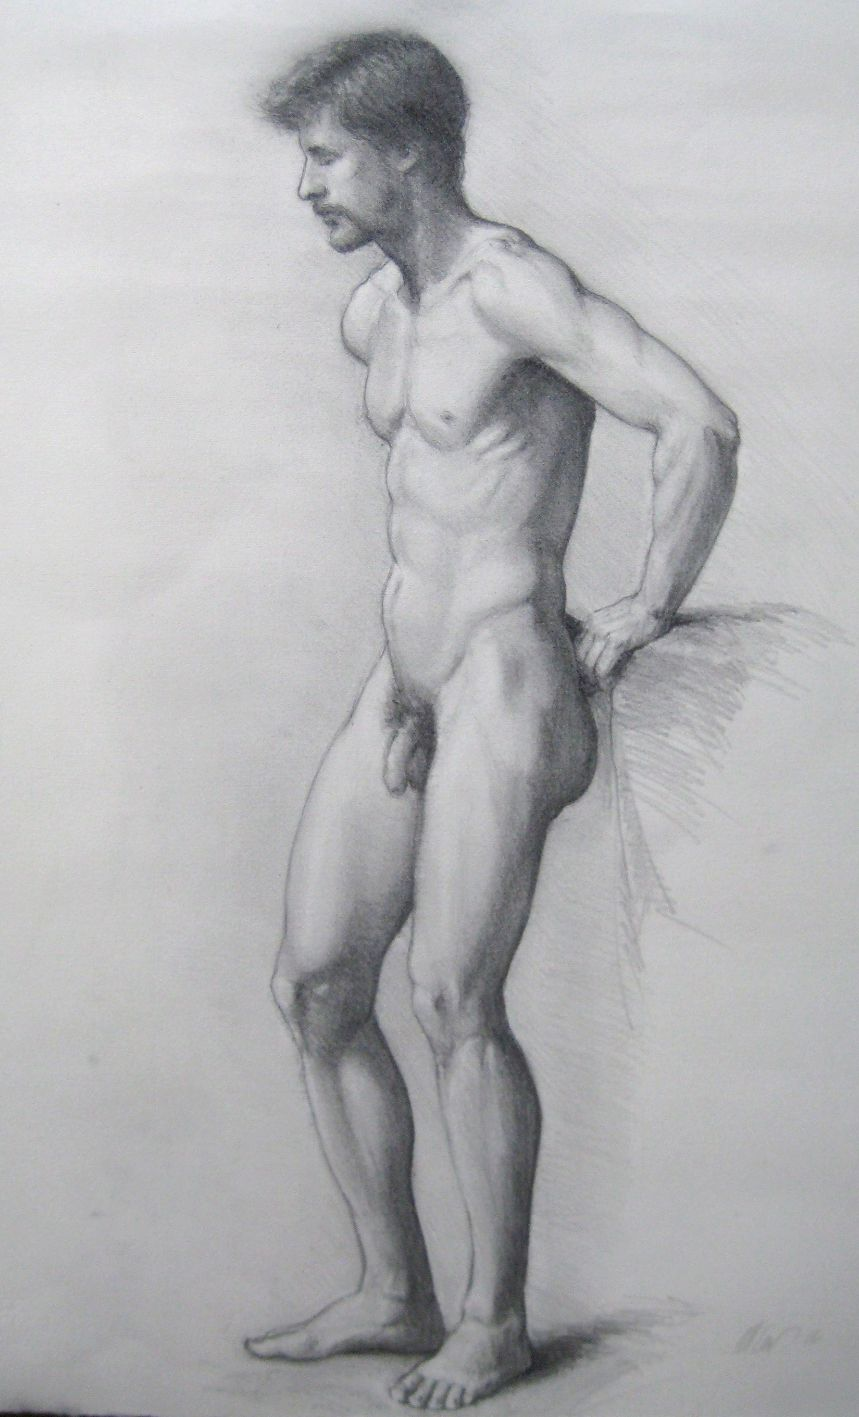 Nude male drawings